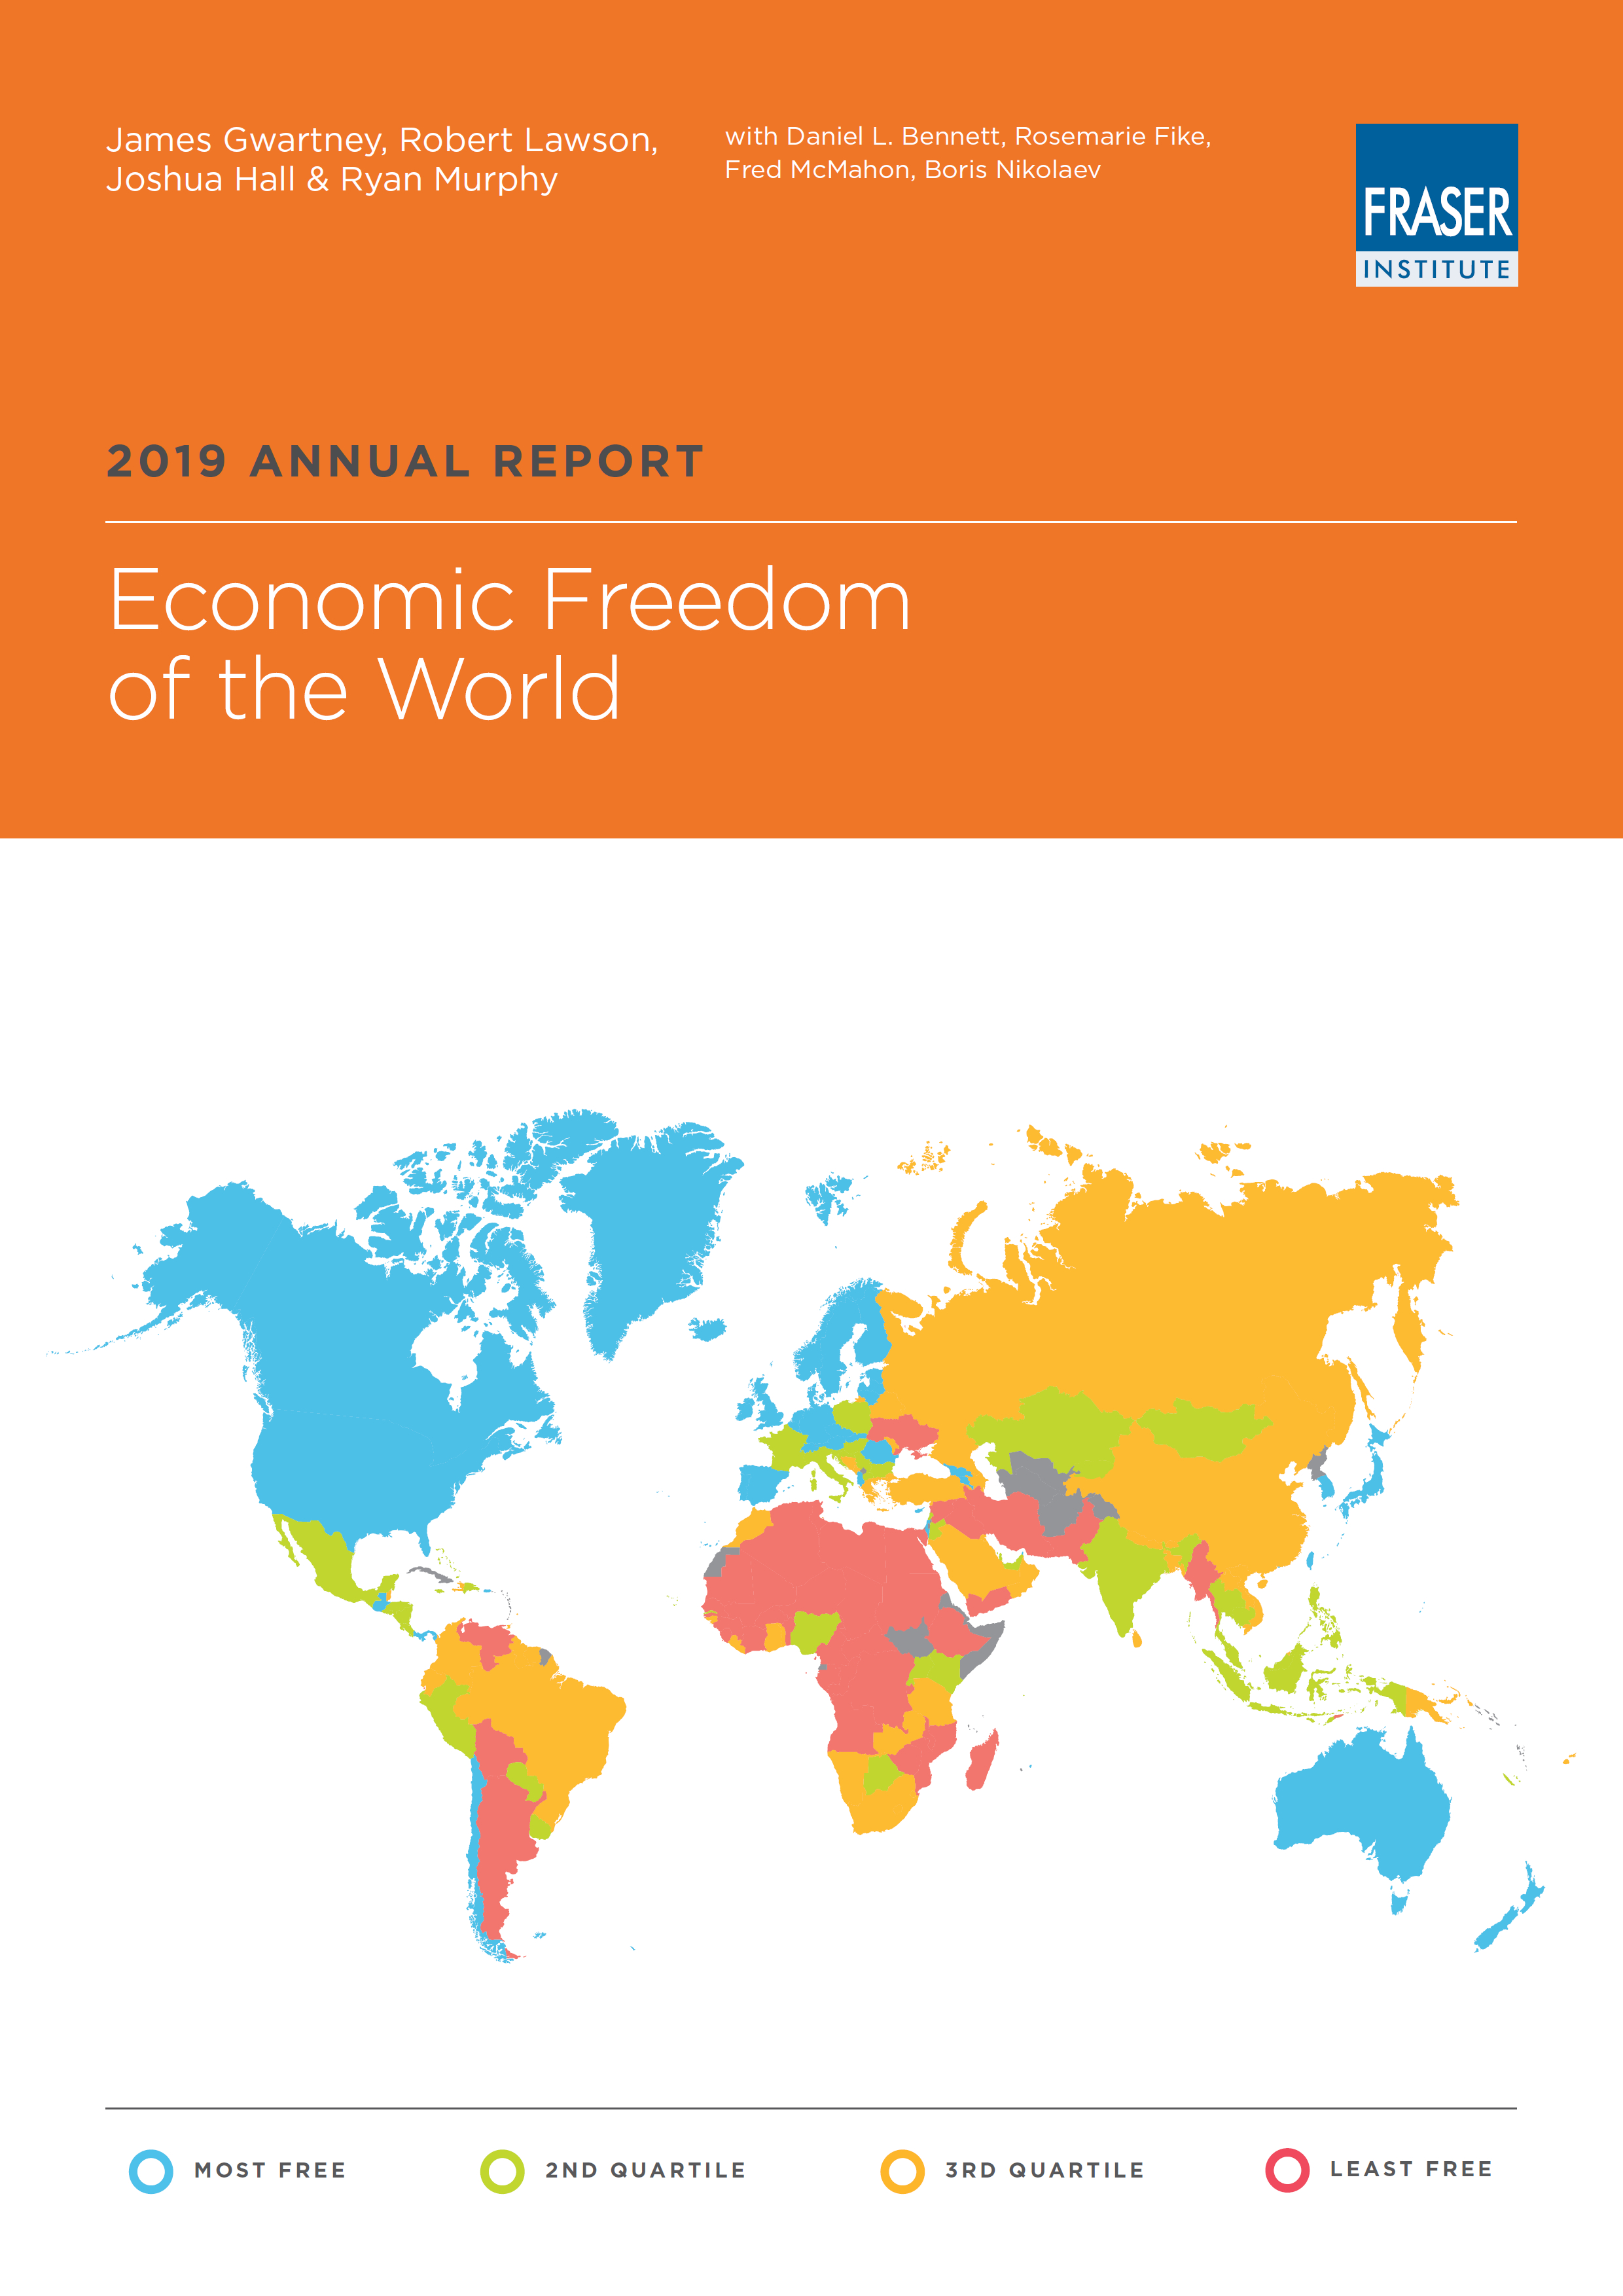 Economic Freedom of the World 2019